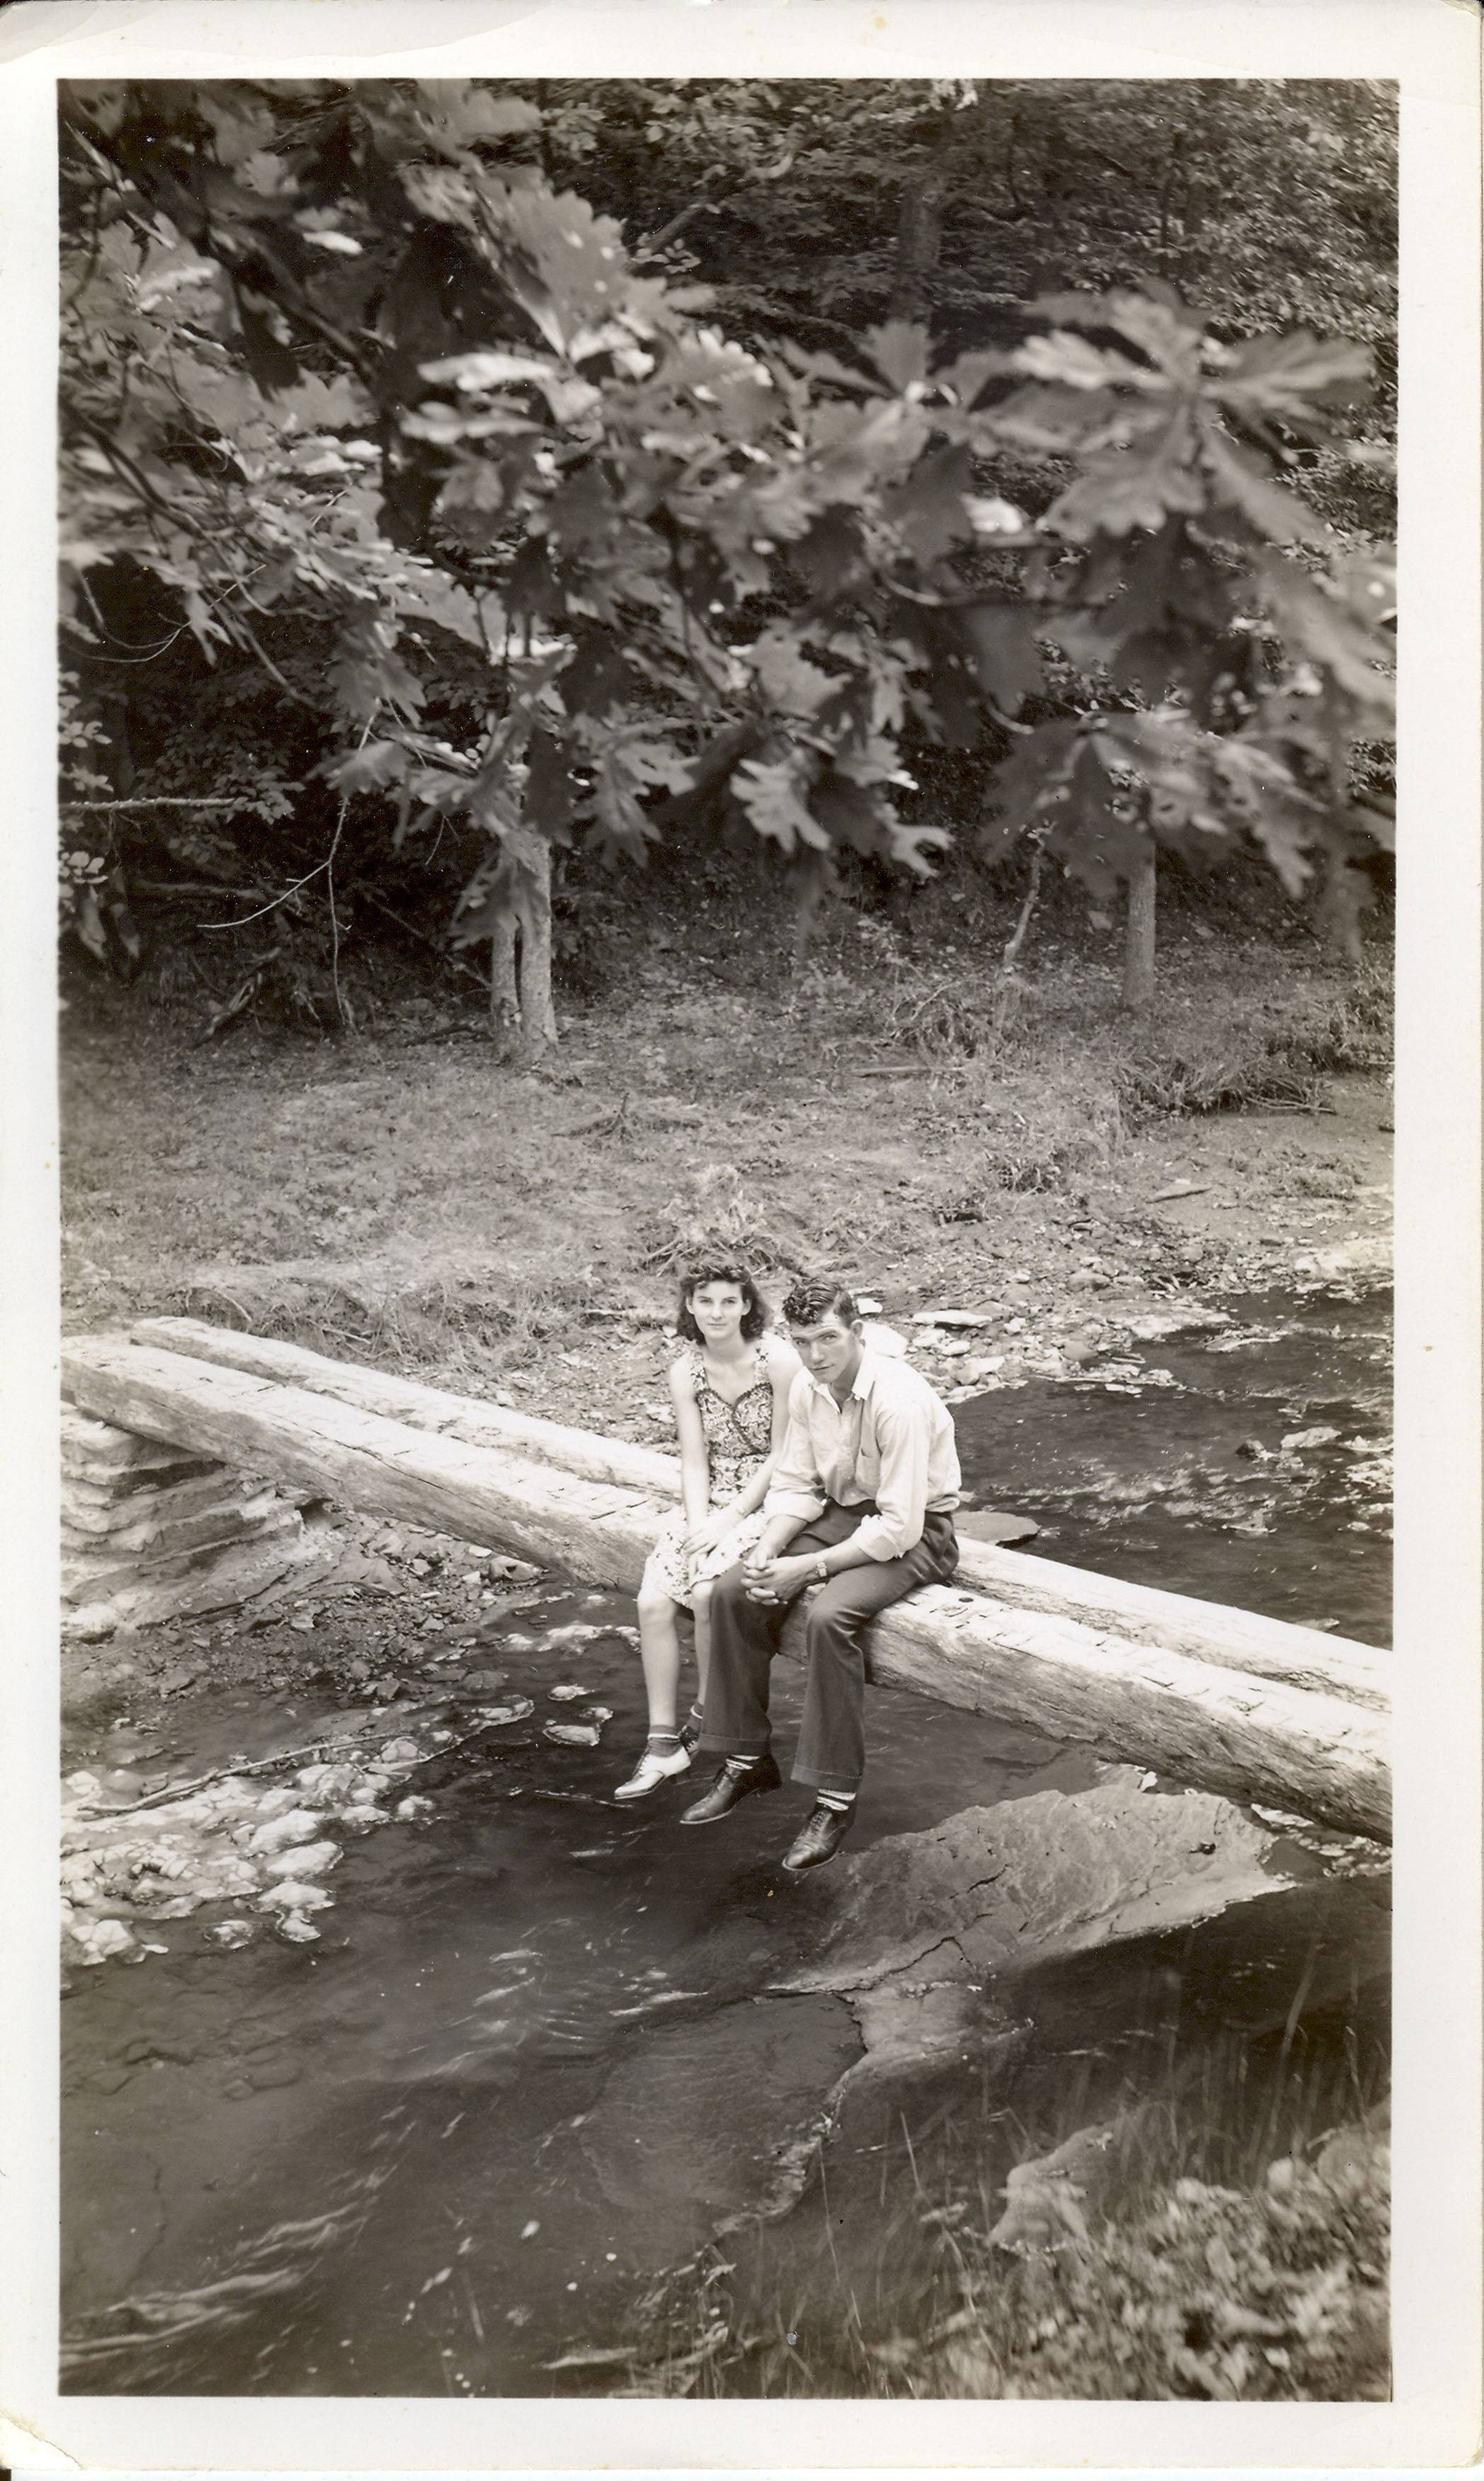 In this September 1940 photo provided by Dick Felumlee, Kenneth and Helen Felumlee of Nashport in central Ohio are shown sitting on a log north of Zanesville about four years before their marriage. T